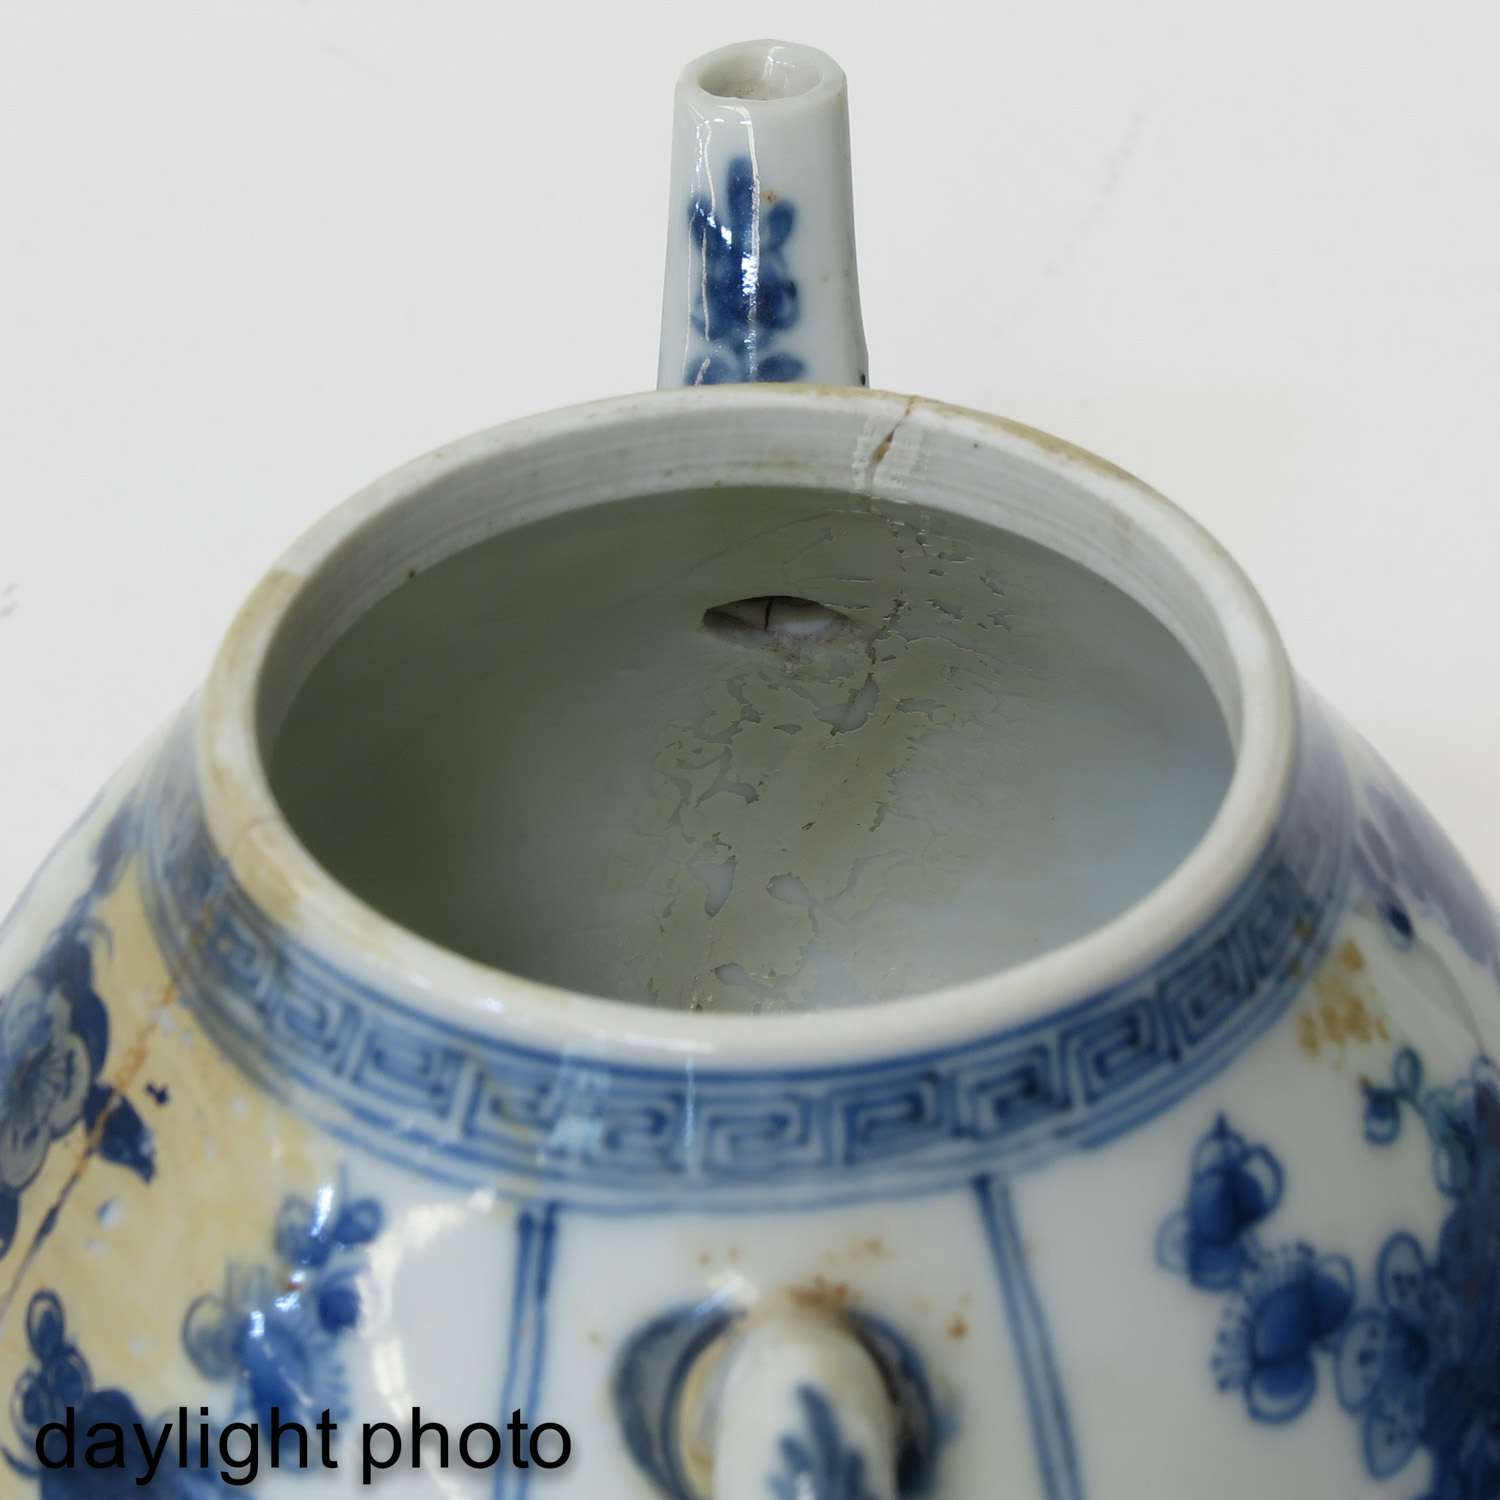 A Diverse Collection of Porcelain - Image 9 of 10